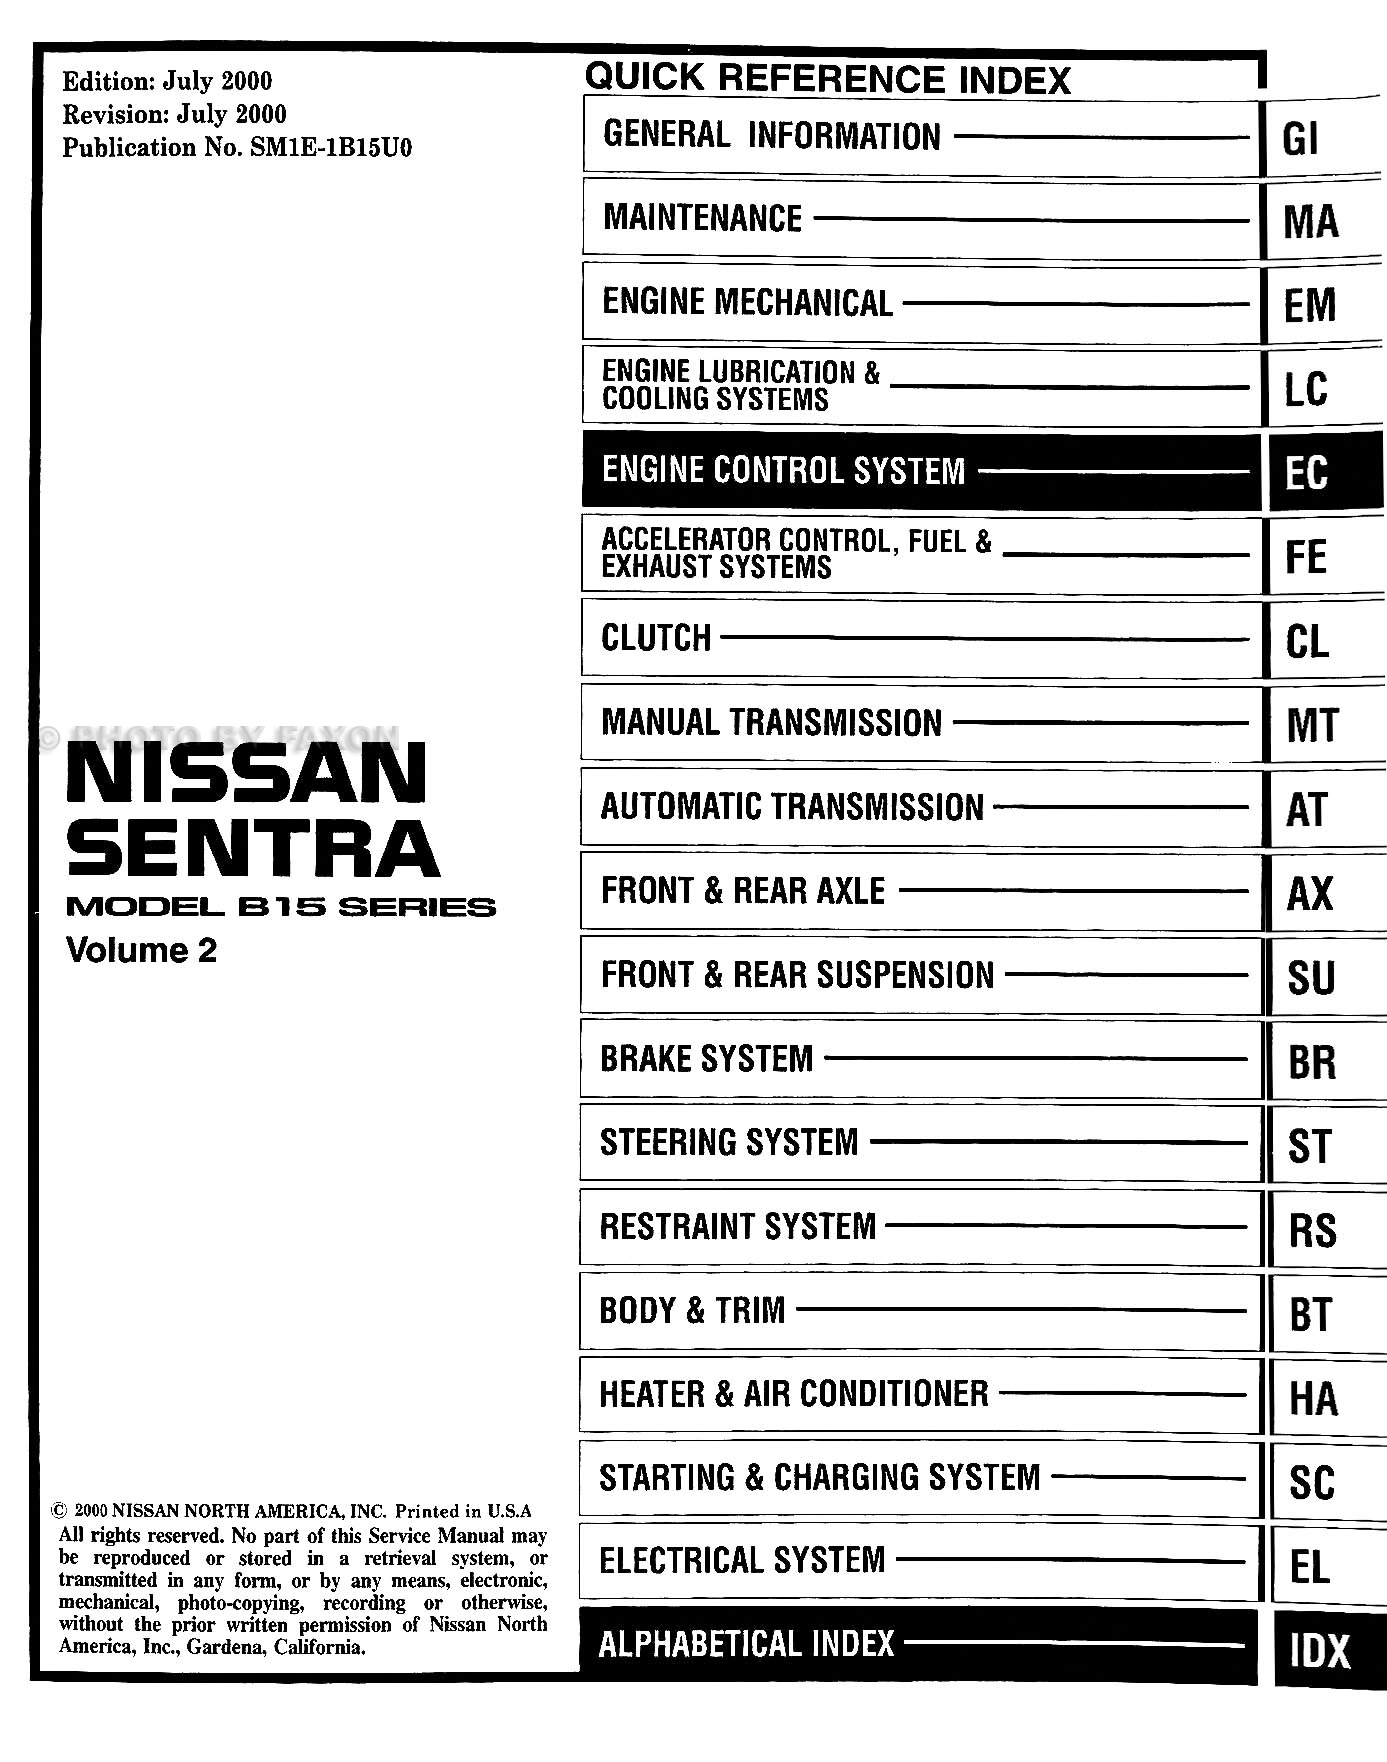 hight resolution of 1994 nissan sentra fuse box wiring diagram source 92 nissan sentra fuse box location 2013 nissan